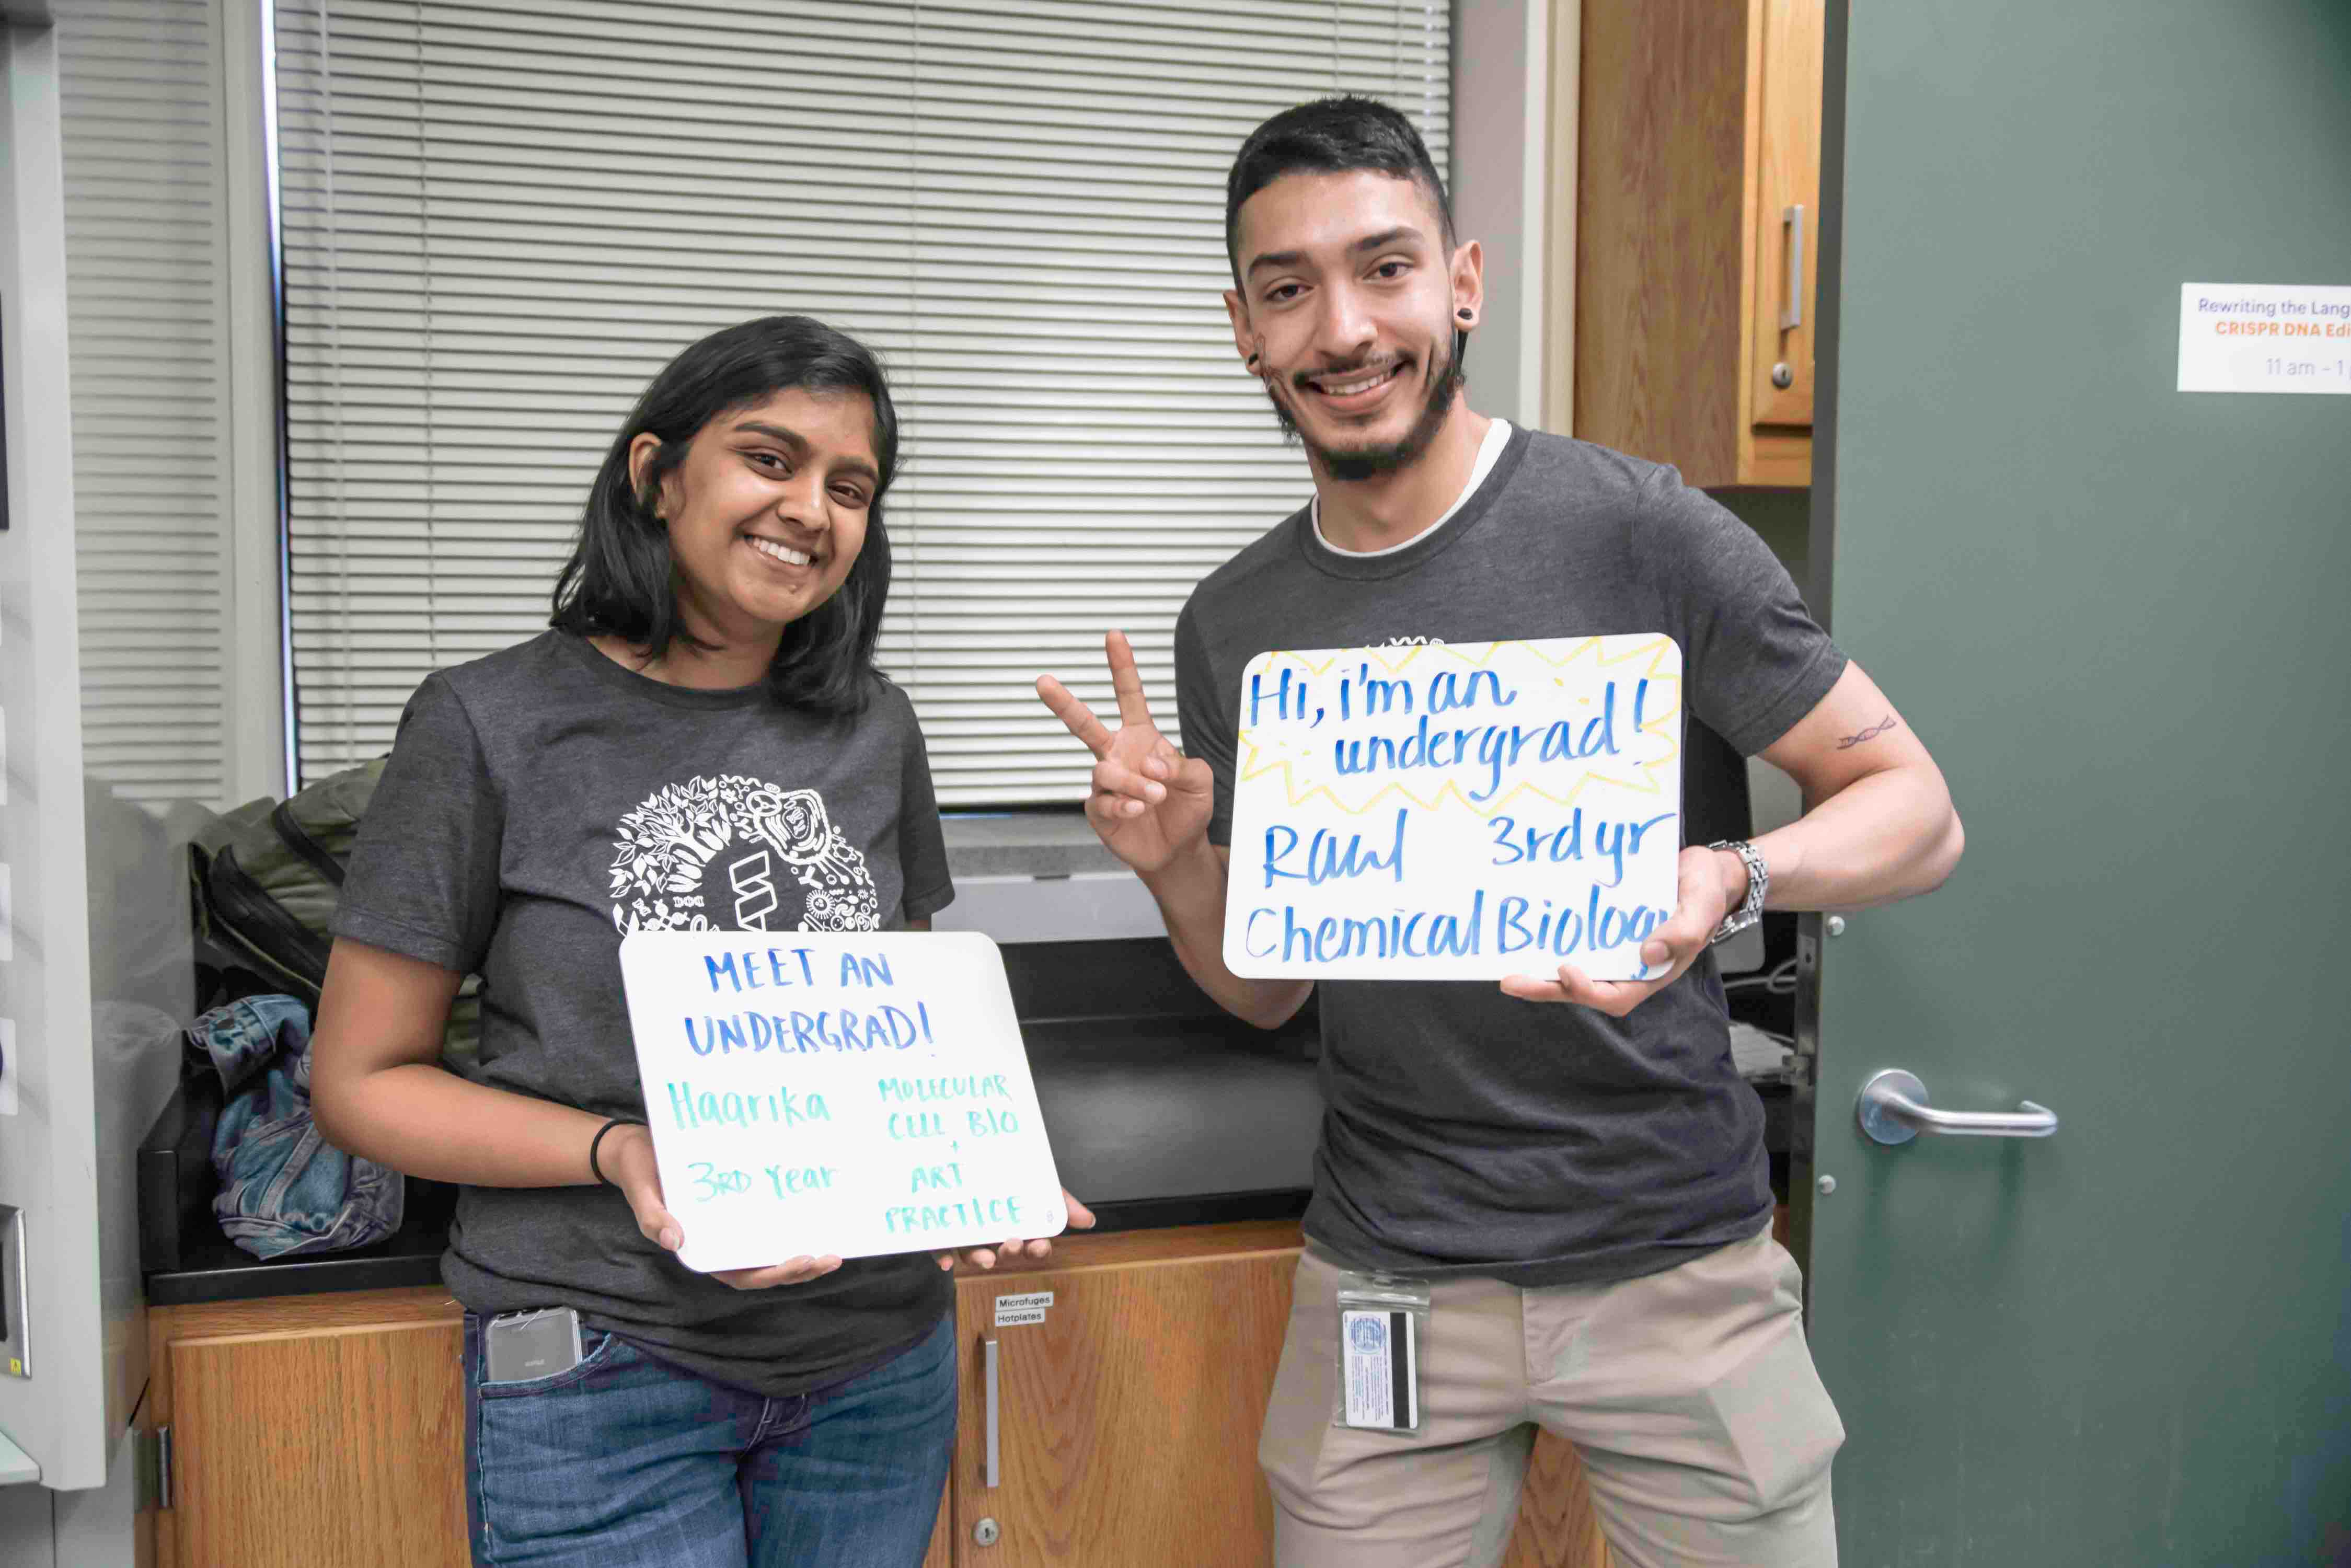 Two undergraduate students holding whiteboard signs